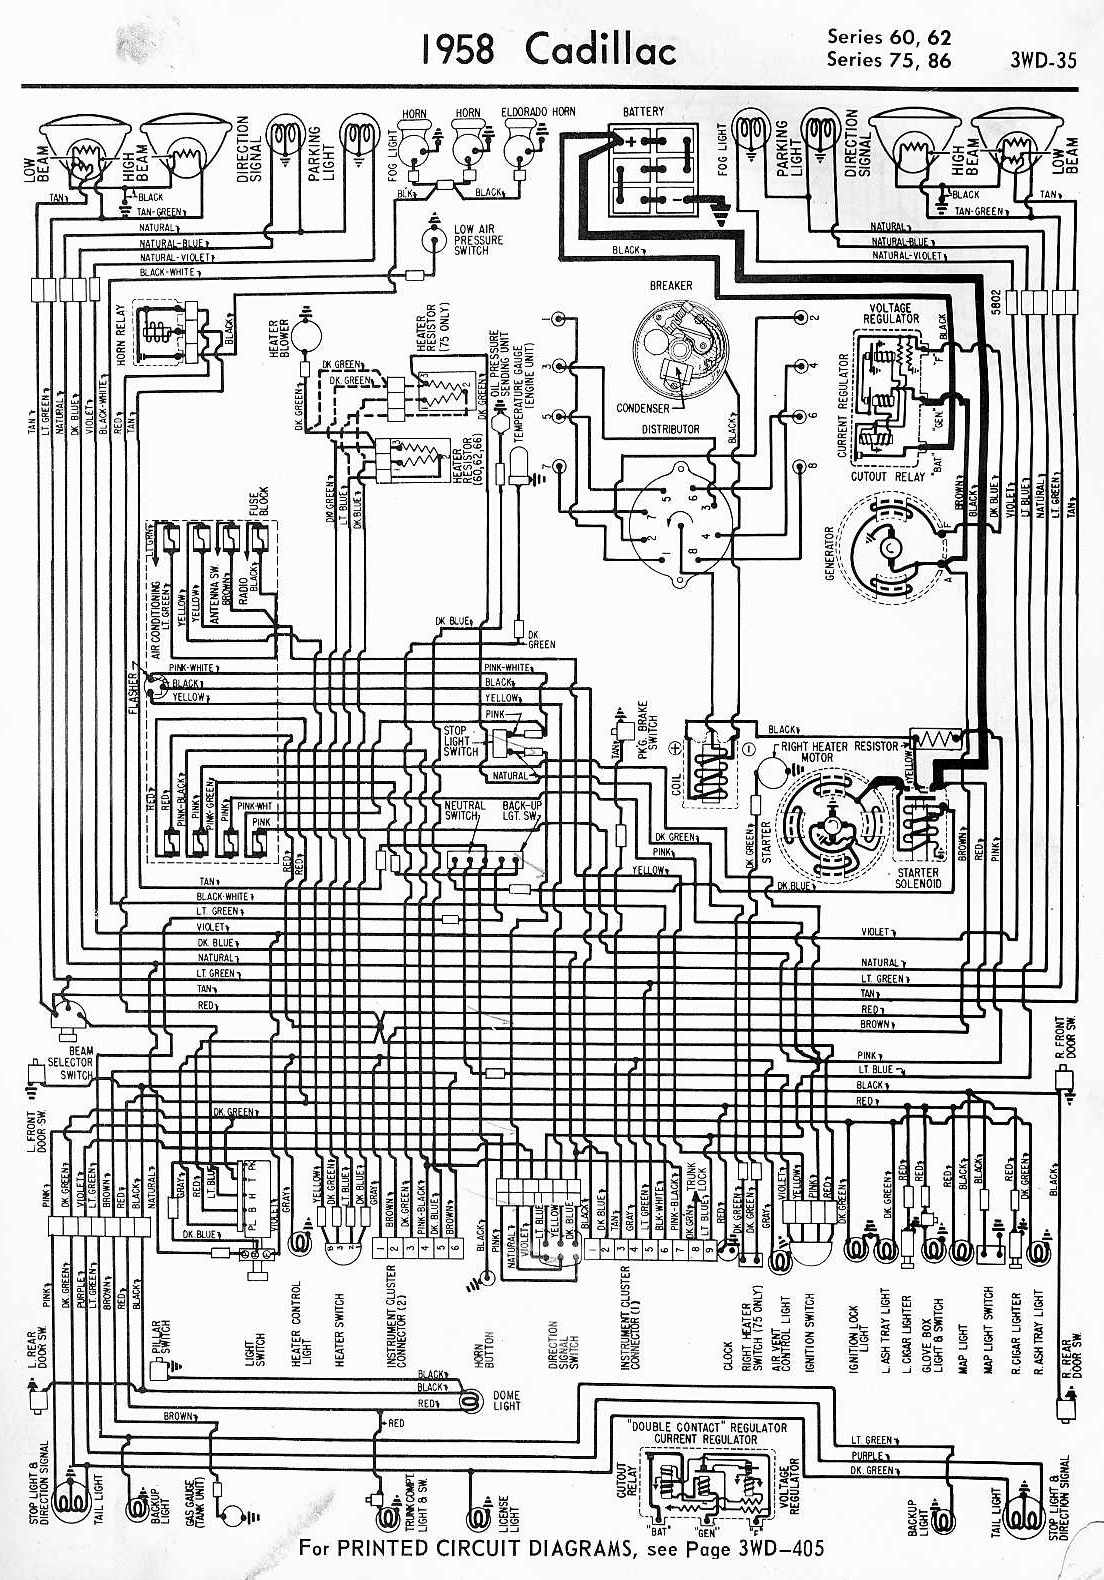 DIAGRAM] 1968 Cadillac Shop Wiring Diagram FULL Version HD Quality Wiring  Diagram - ELECTRICITYWIRING.CLUB-RONSARD.FRClub Ronsard